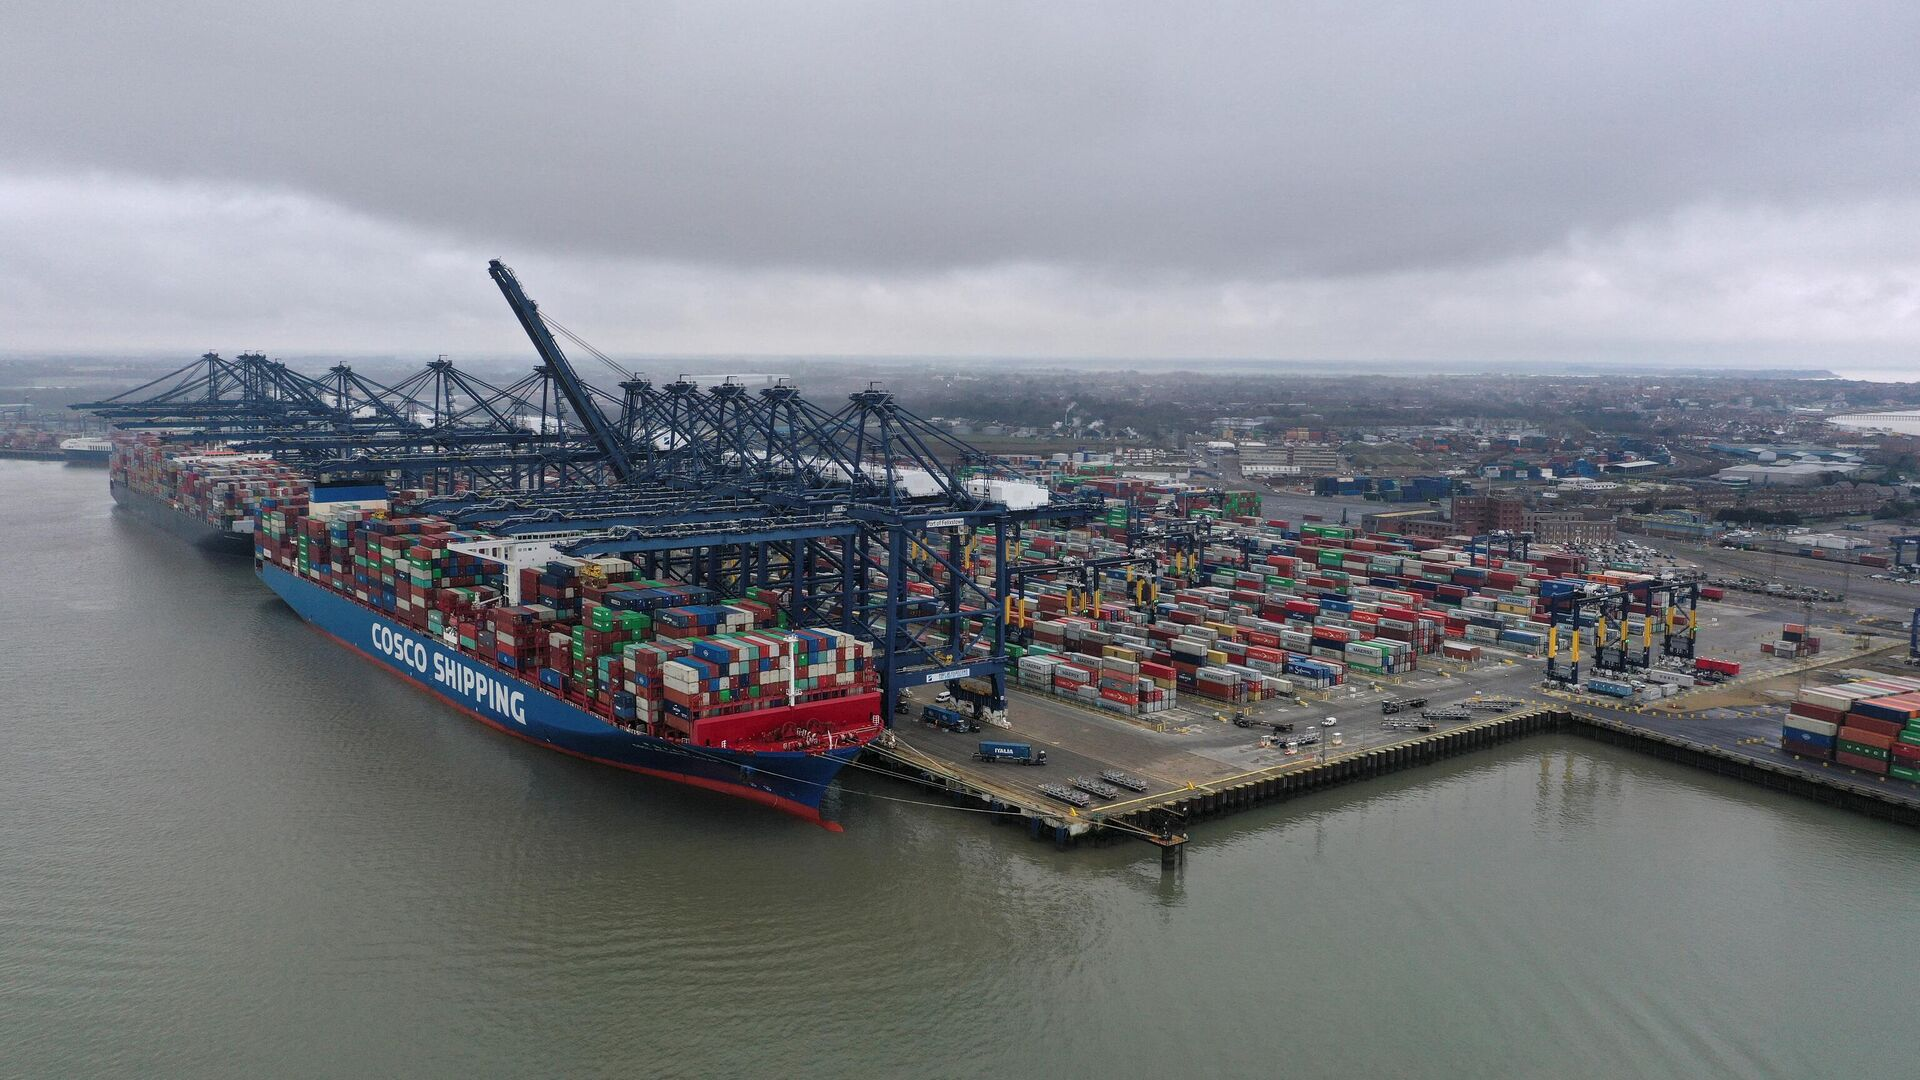 Container ship 'CSCL Atlantic Ocean' is docked at the Port of Felixstowe, east of London on March 4, 2021 - Sputnik International, 1920, 13.10.2021